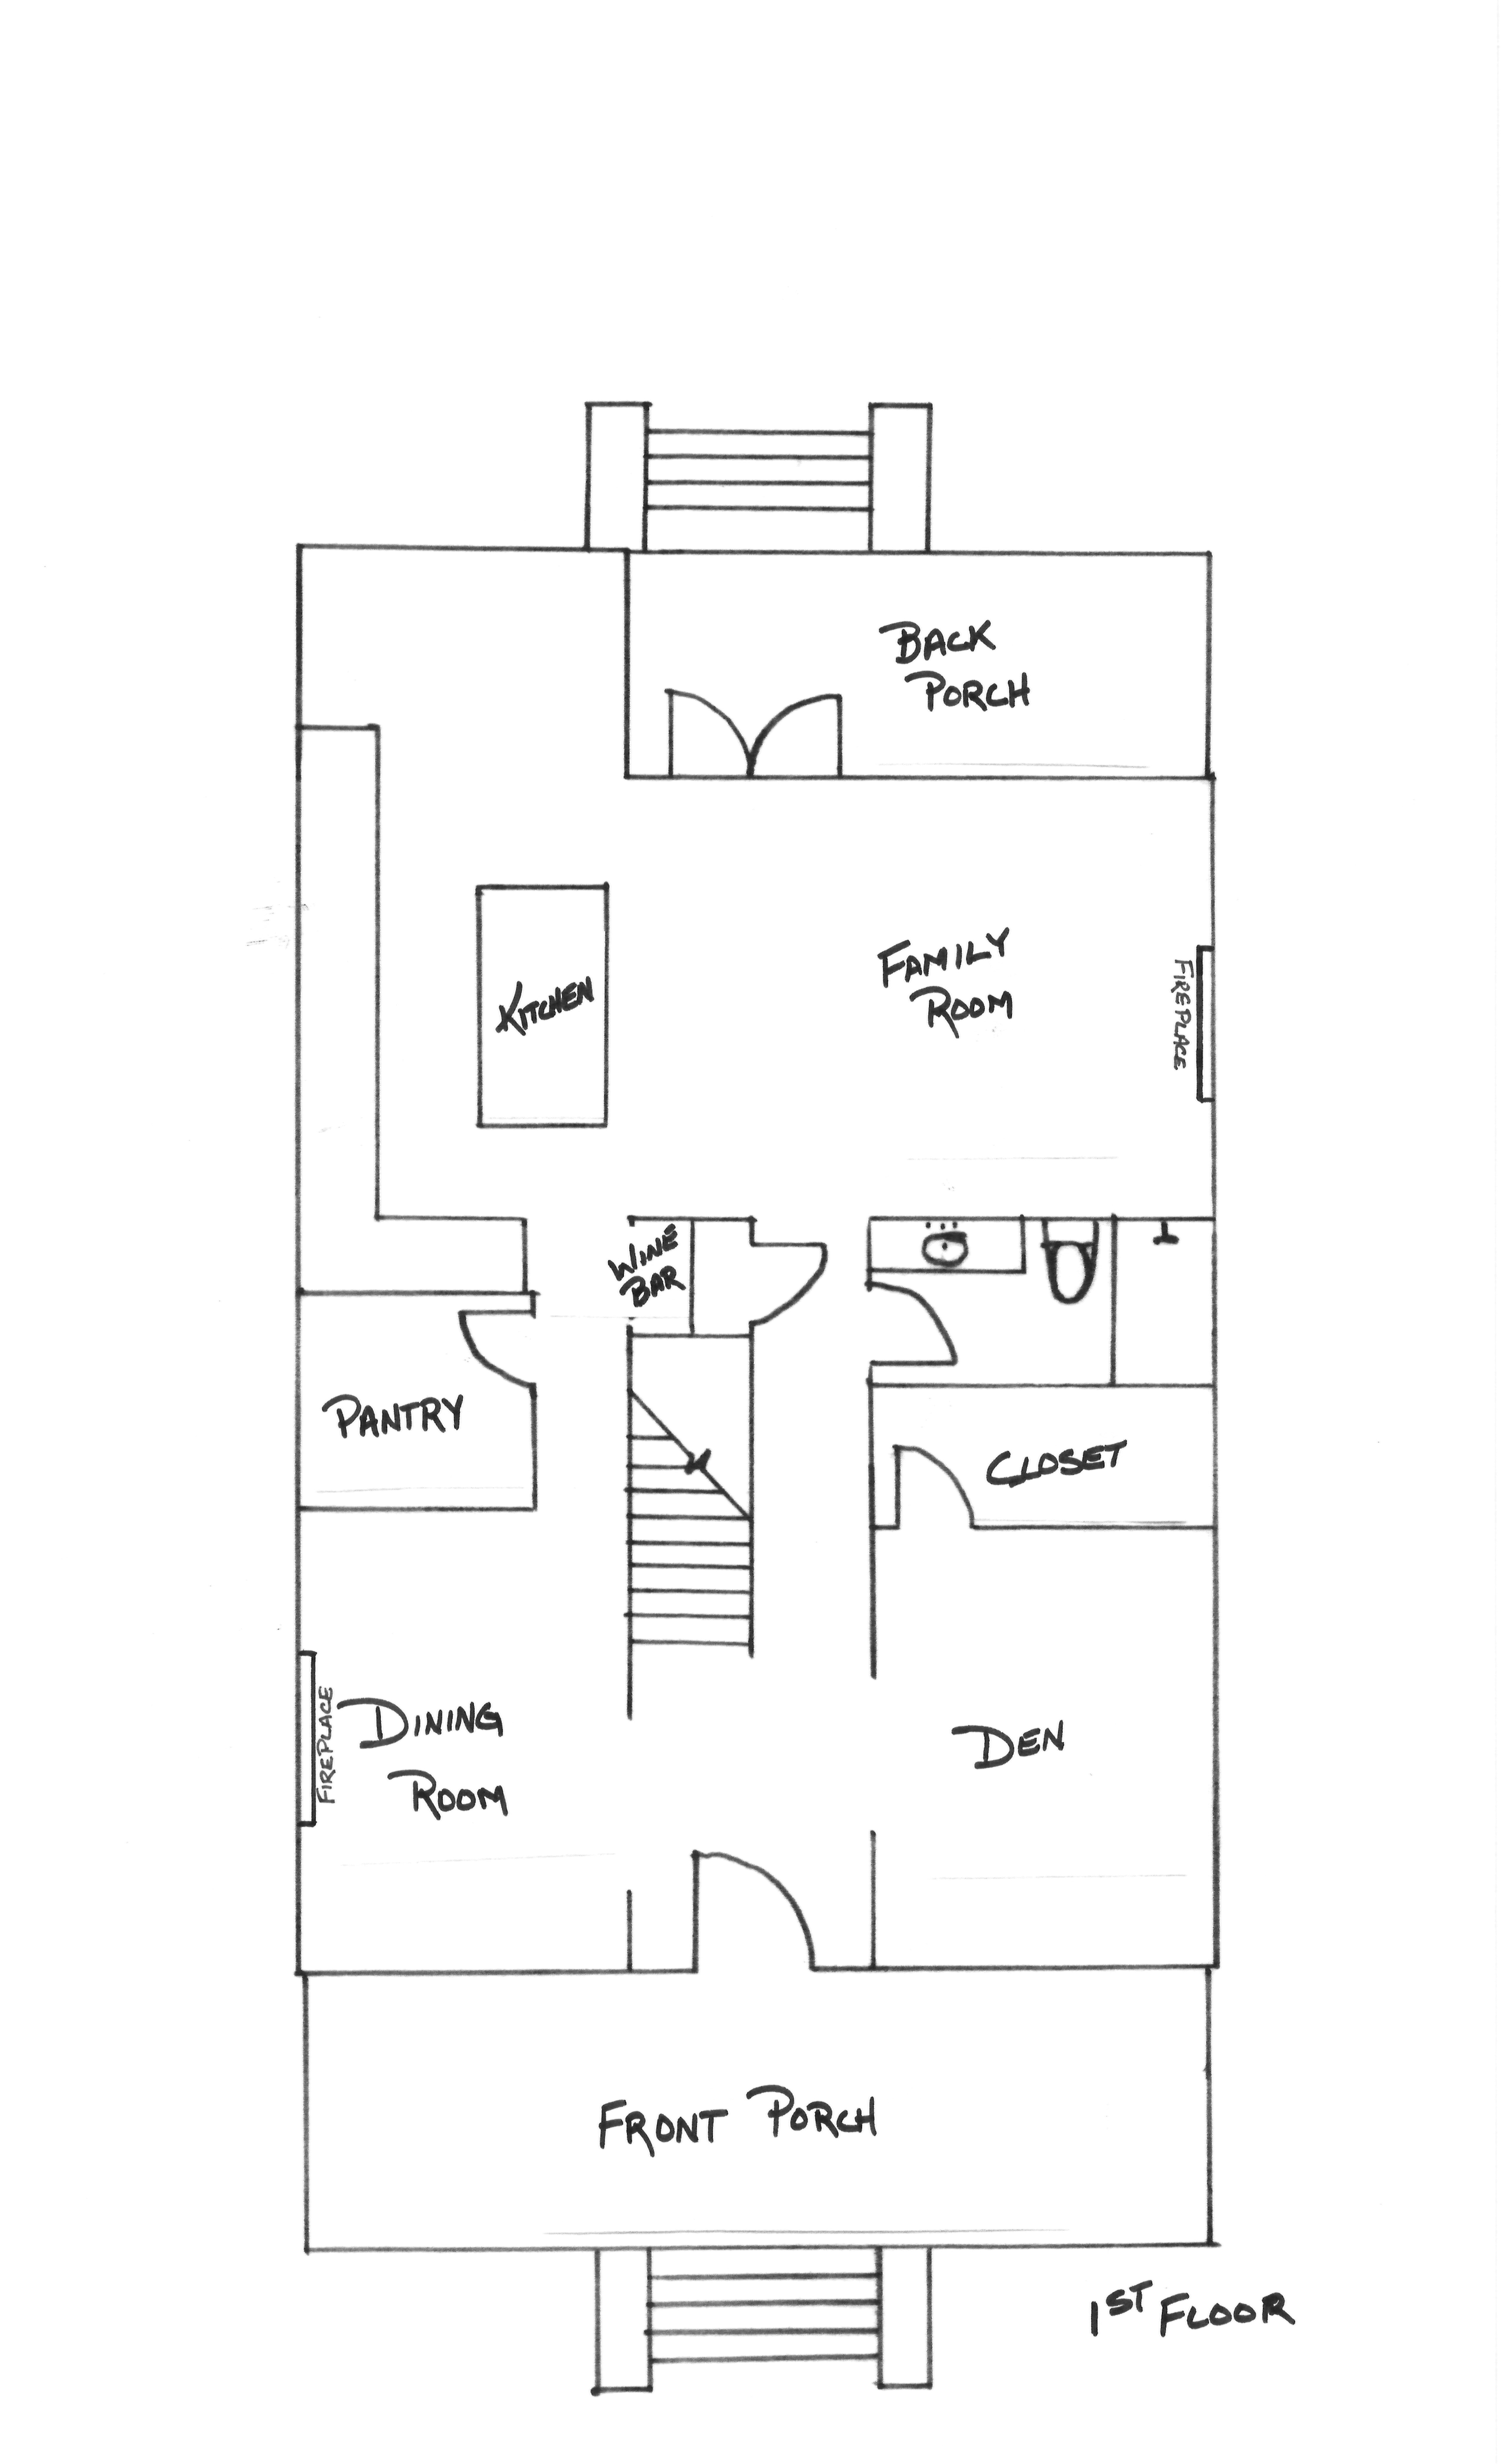 2120 w trade rough sketch house plans jpeg test page 1